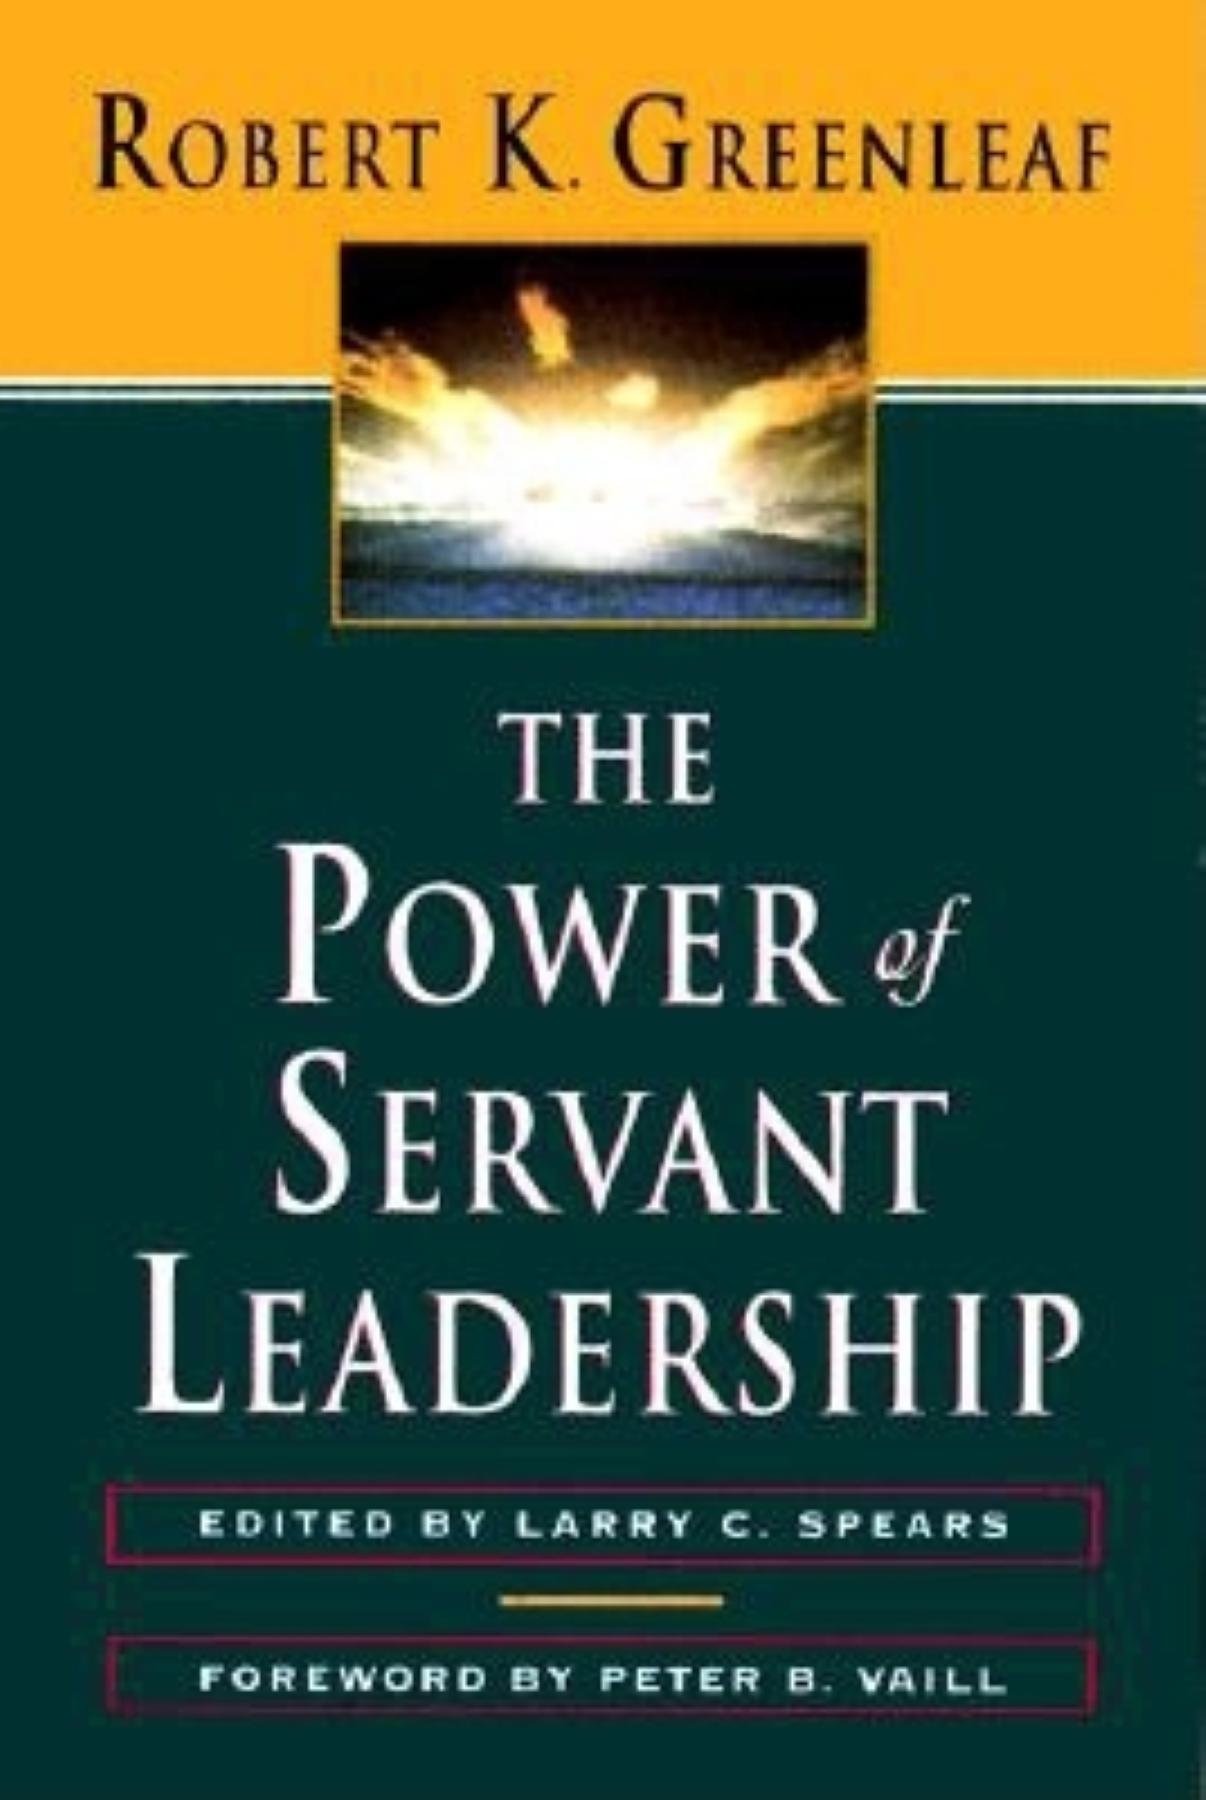 the power of servant leadership agency distributed co uk the power of servant leadership agency distributed co uk robert k greenleaf larry c spears peter b vaill 9781576750353 books